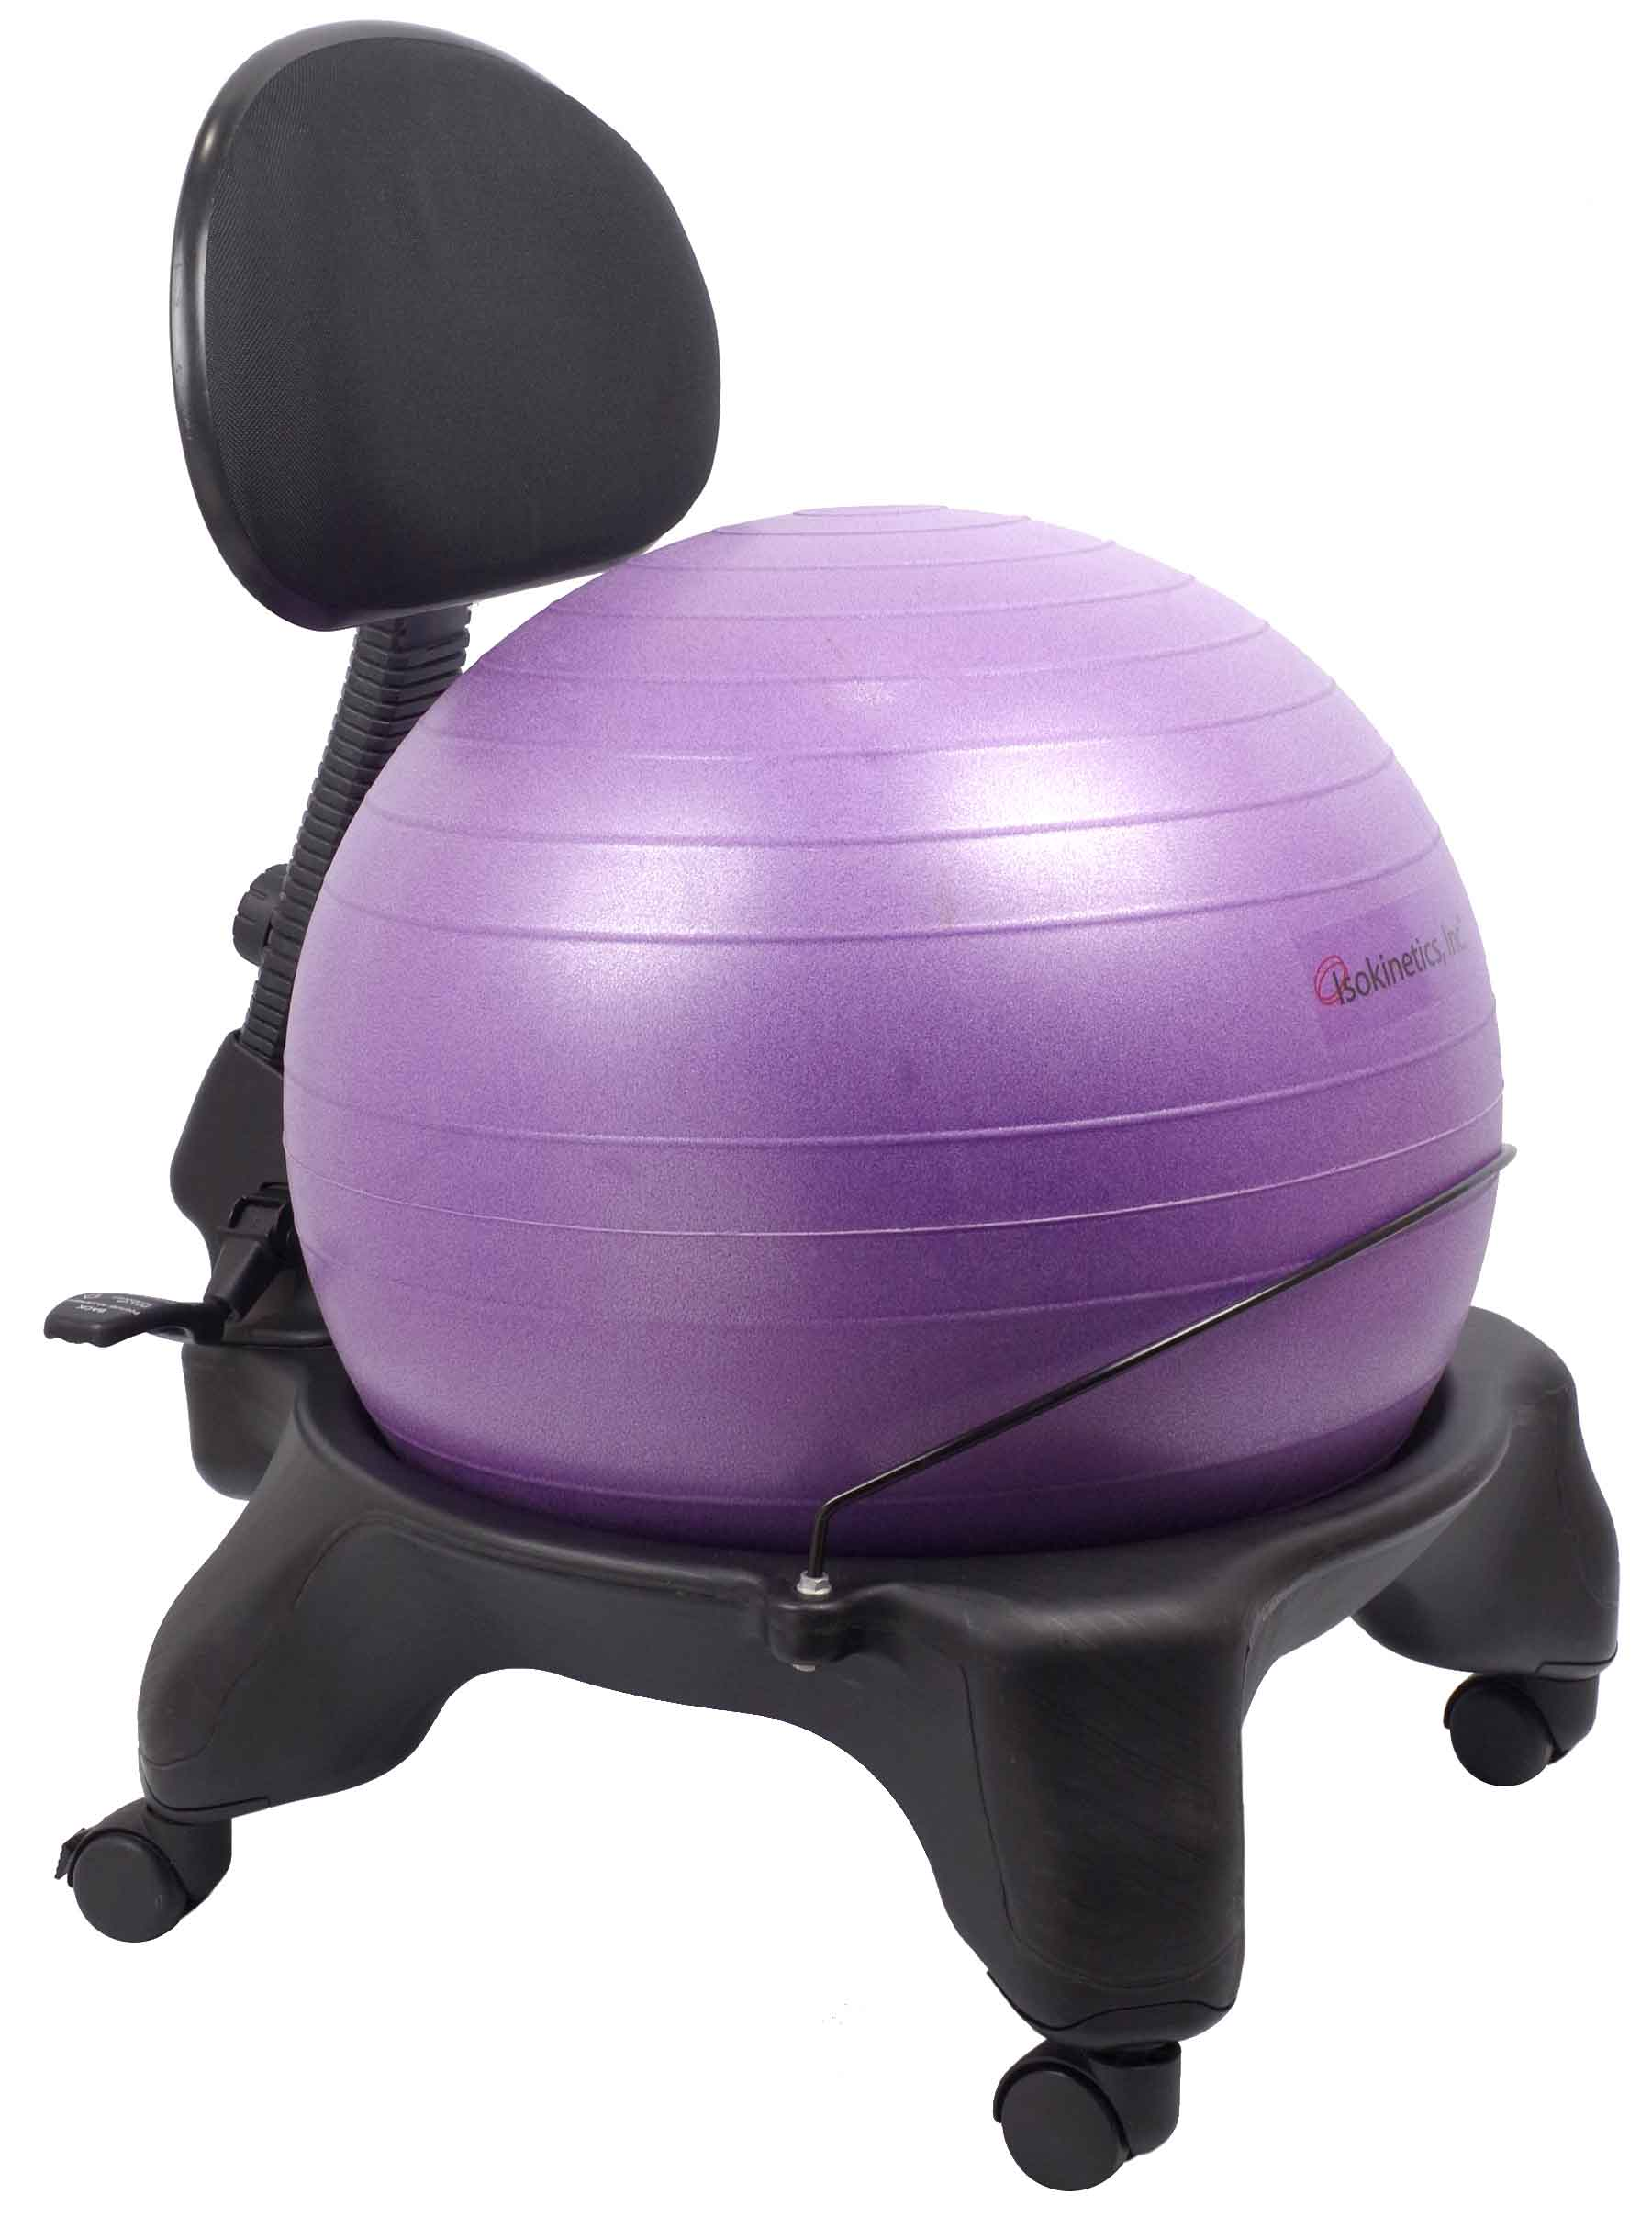 Exercise Ball Desk Chair Best Exercise Ball Chair Reviewed Rated 2019 Garage Gym Ideas